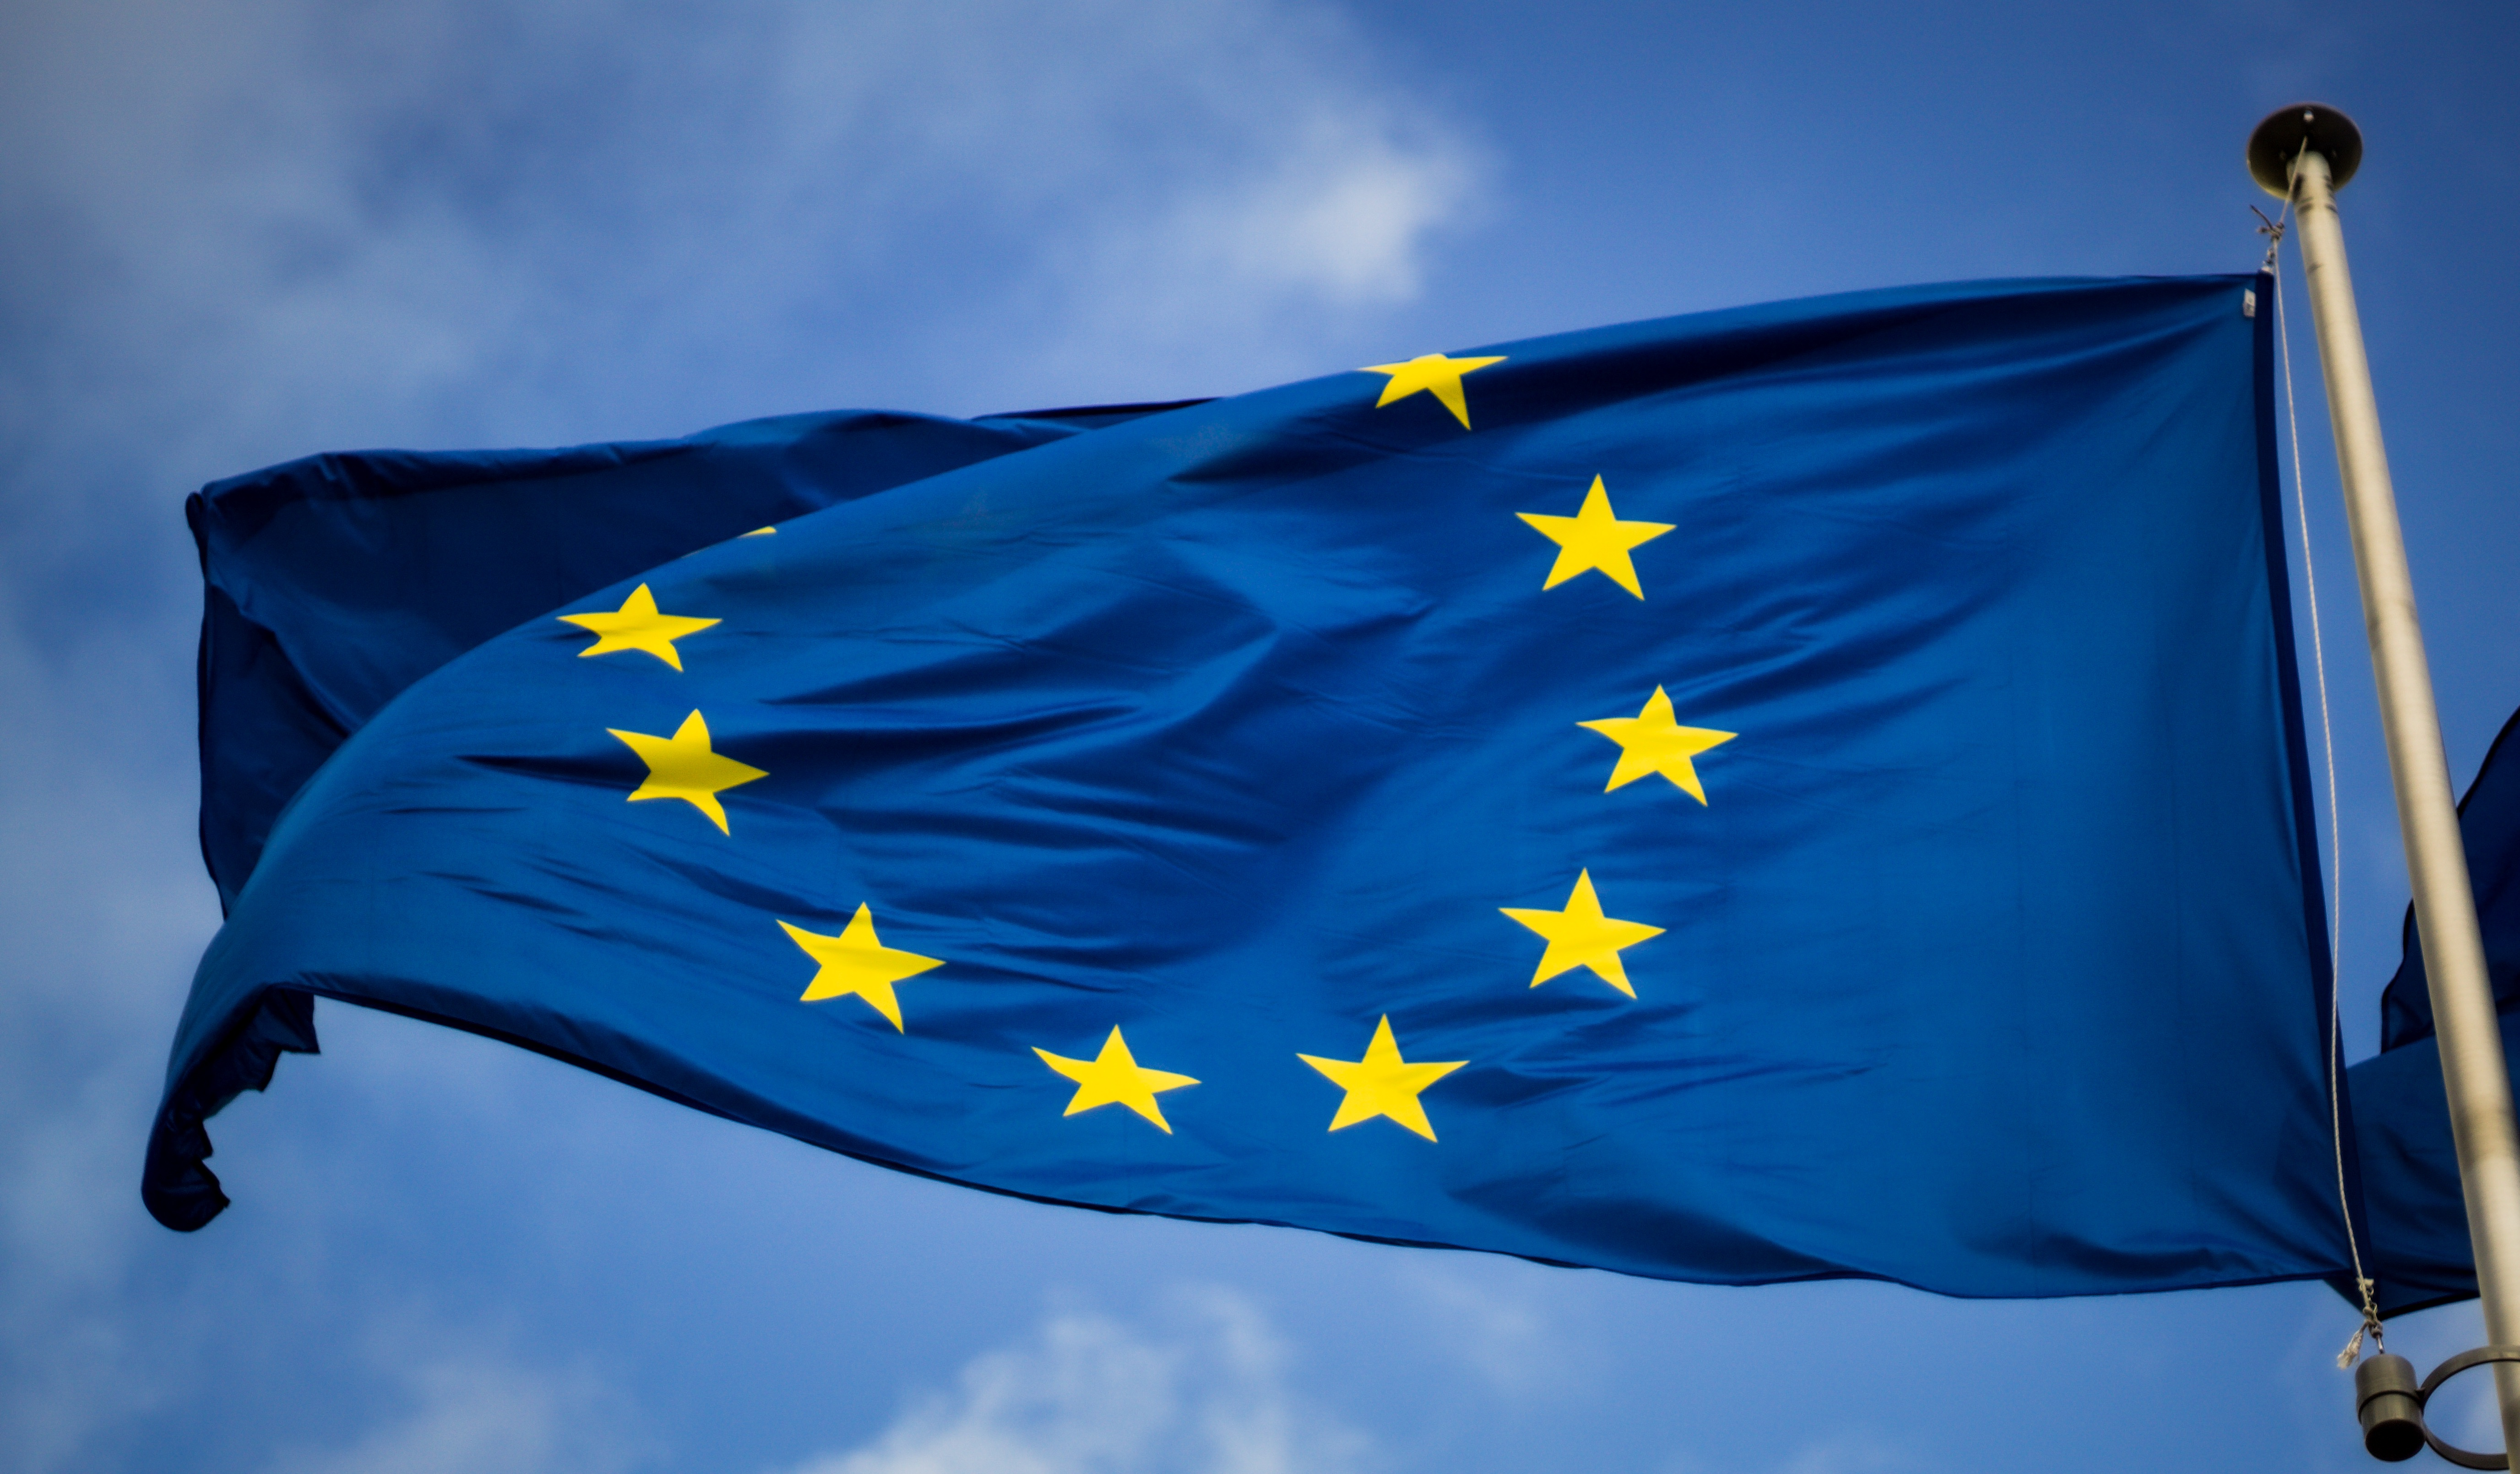 The US and EU Partner on Supply Chain Issues